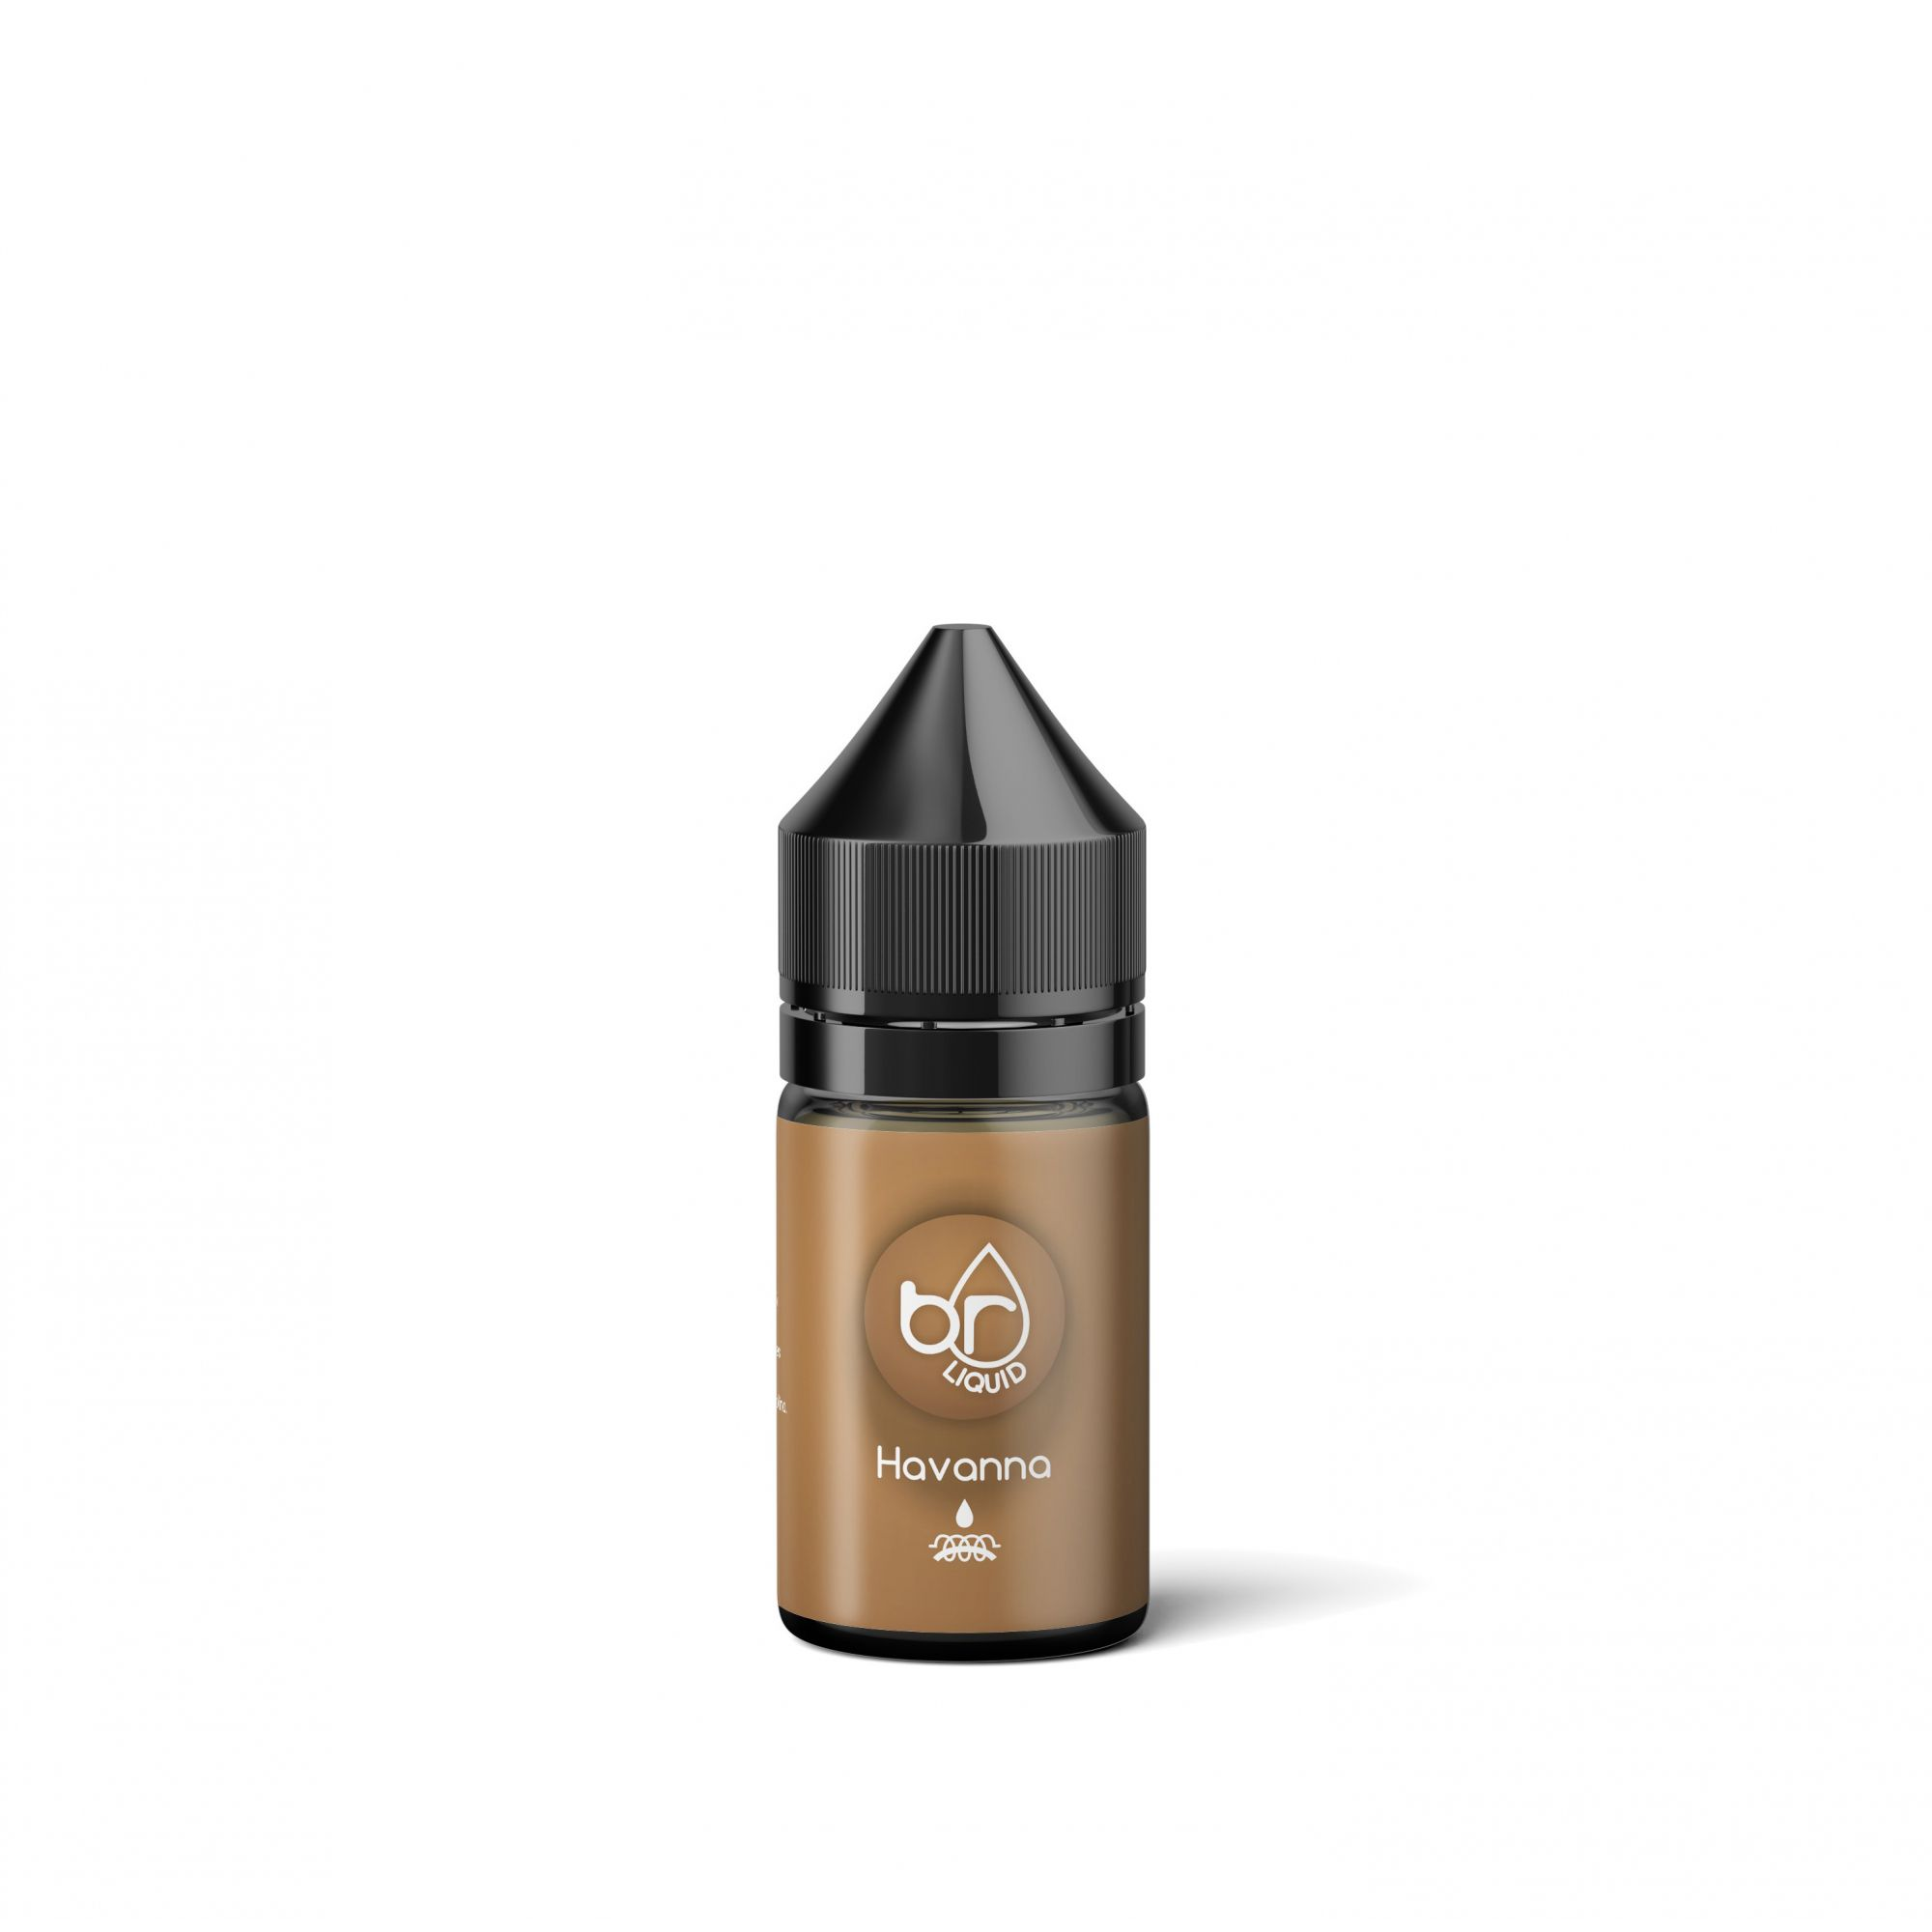 Brliquid - Havanna 30 ml